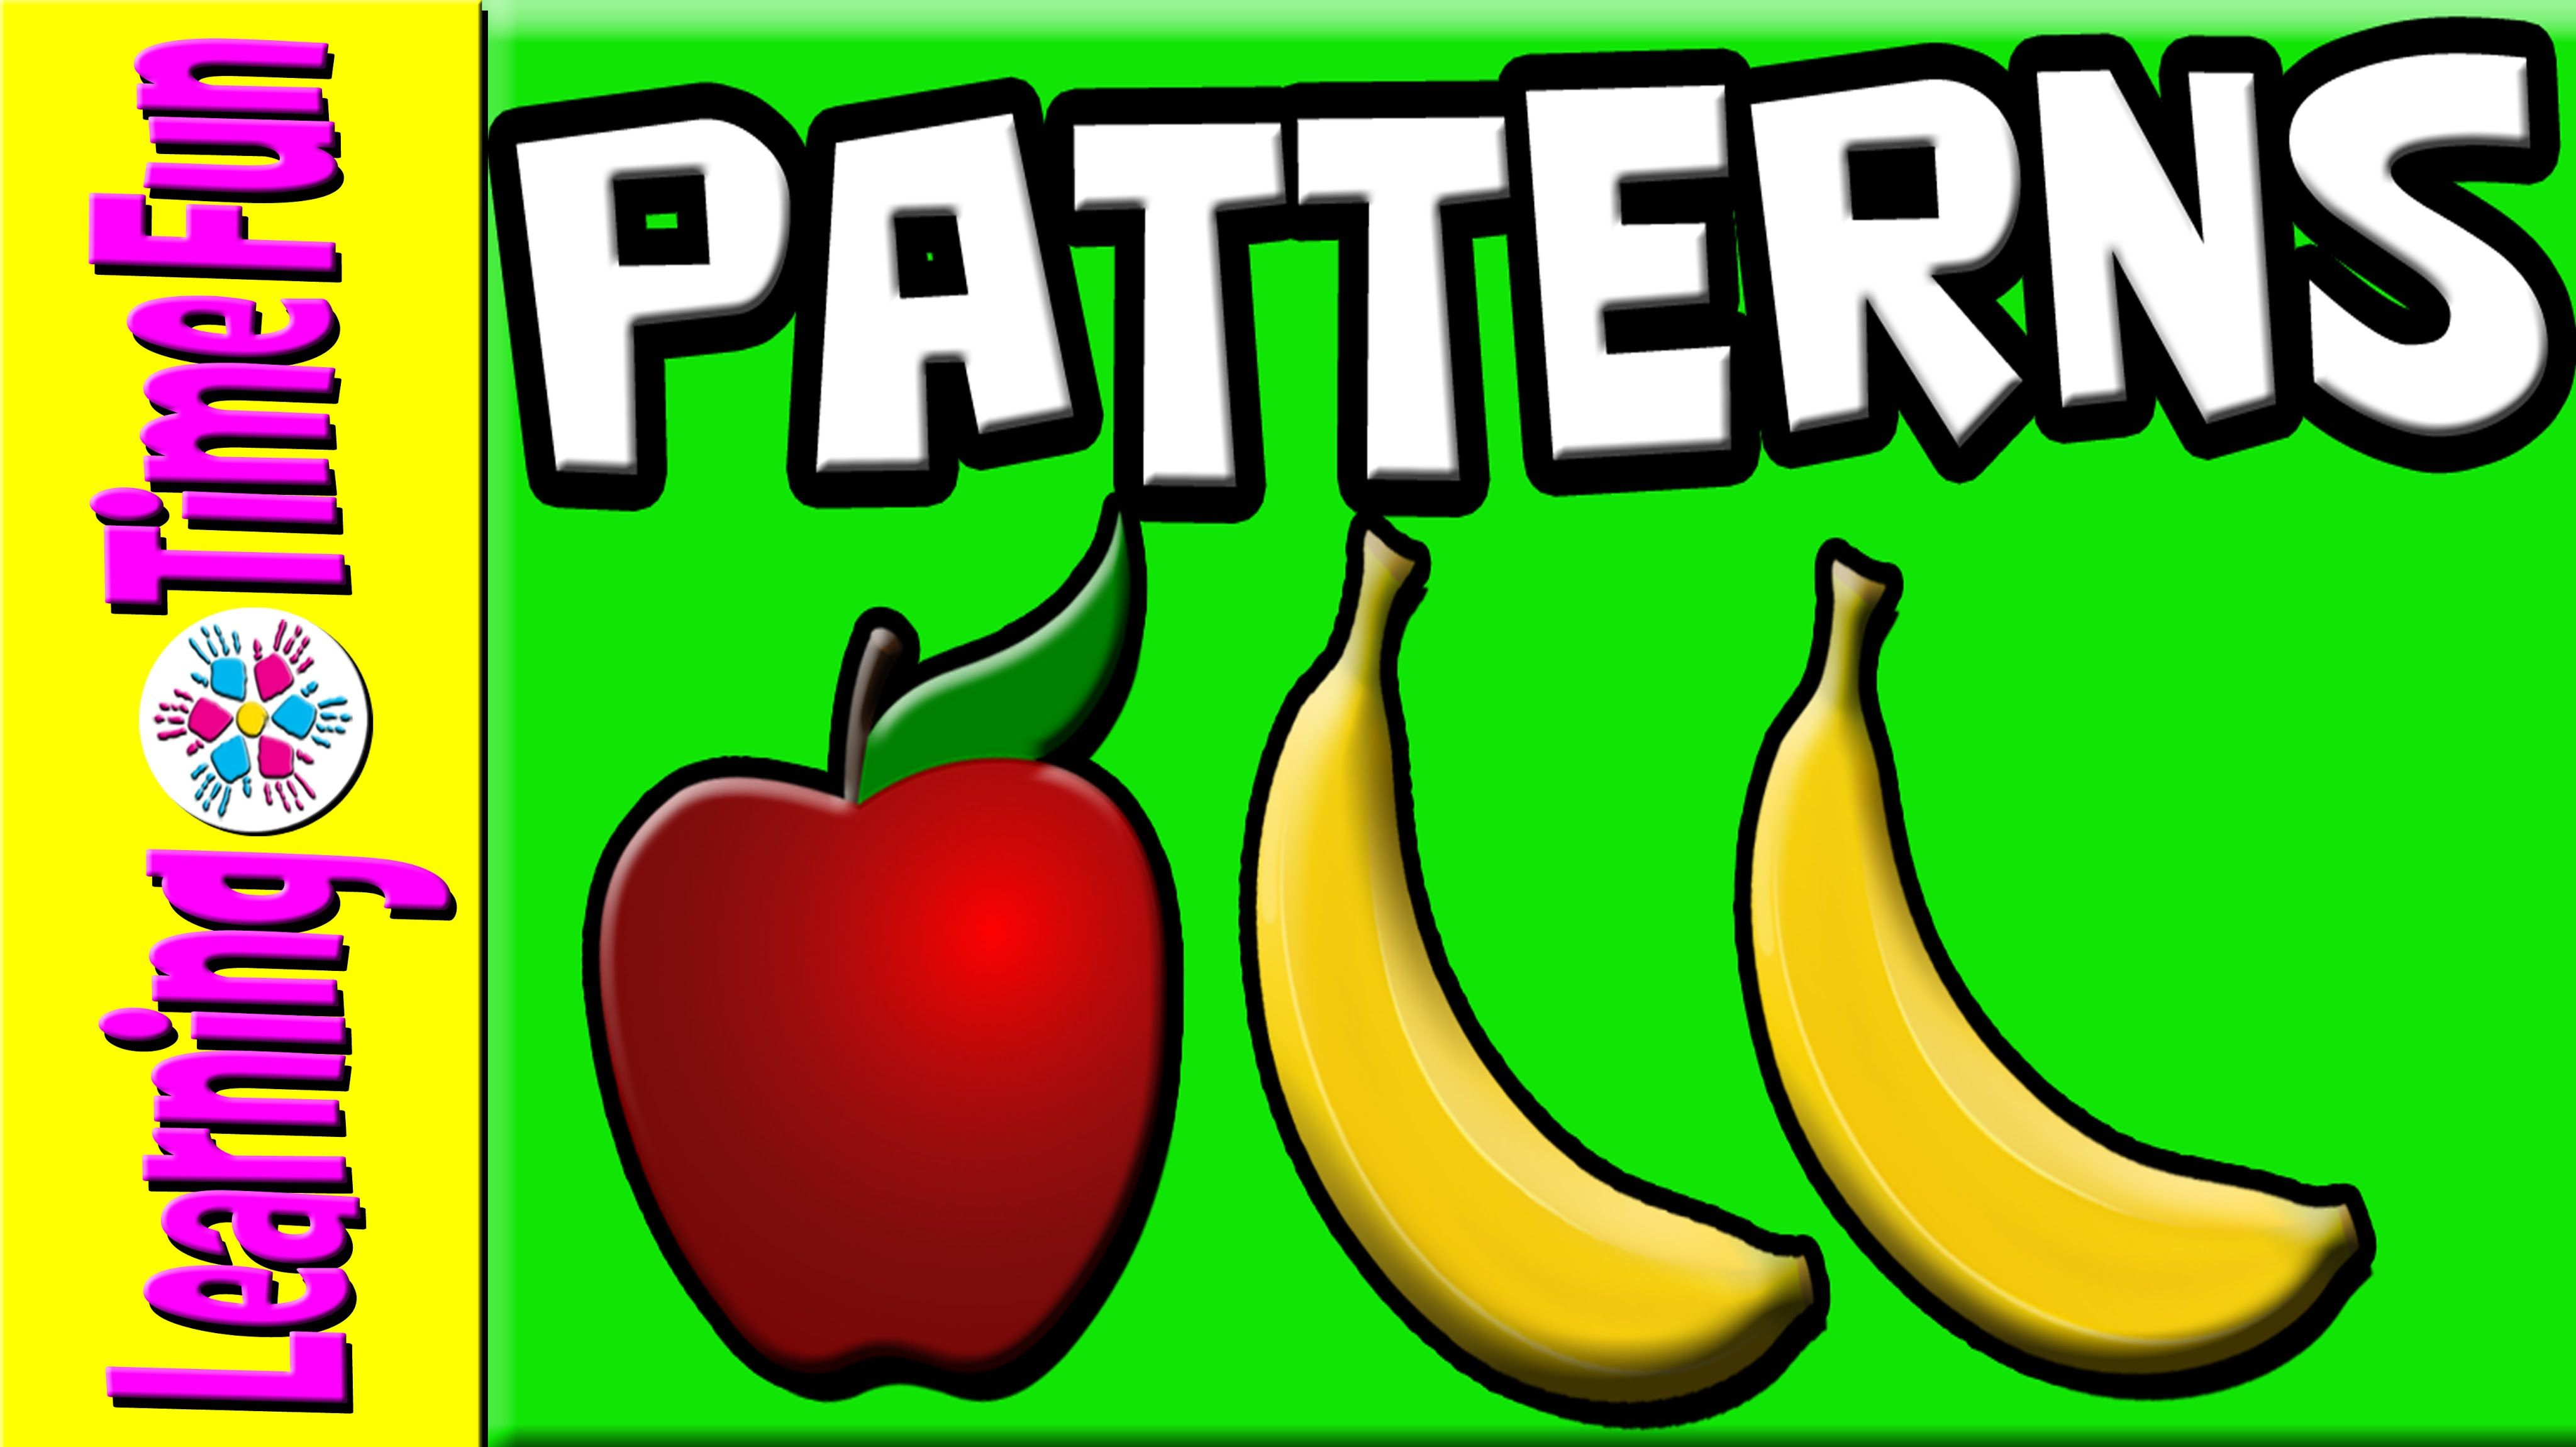 Learn Patterns For Kids With Fruits In This Abb Pattern